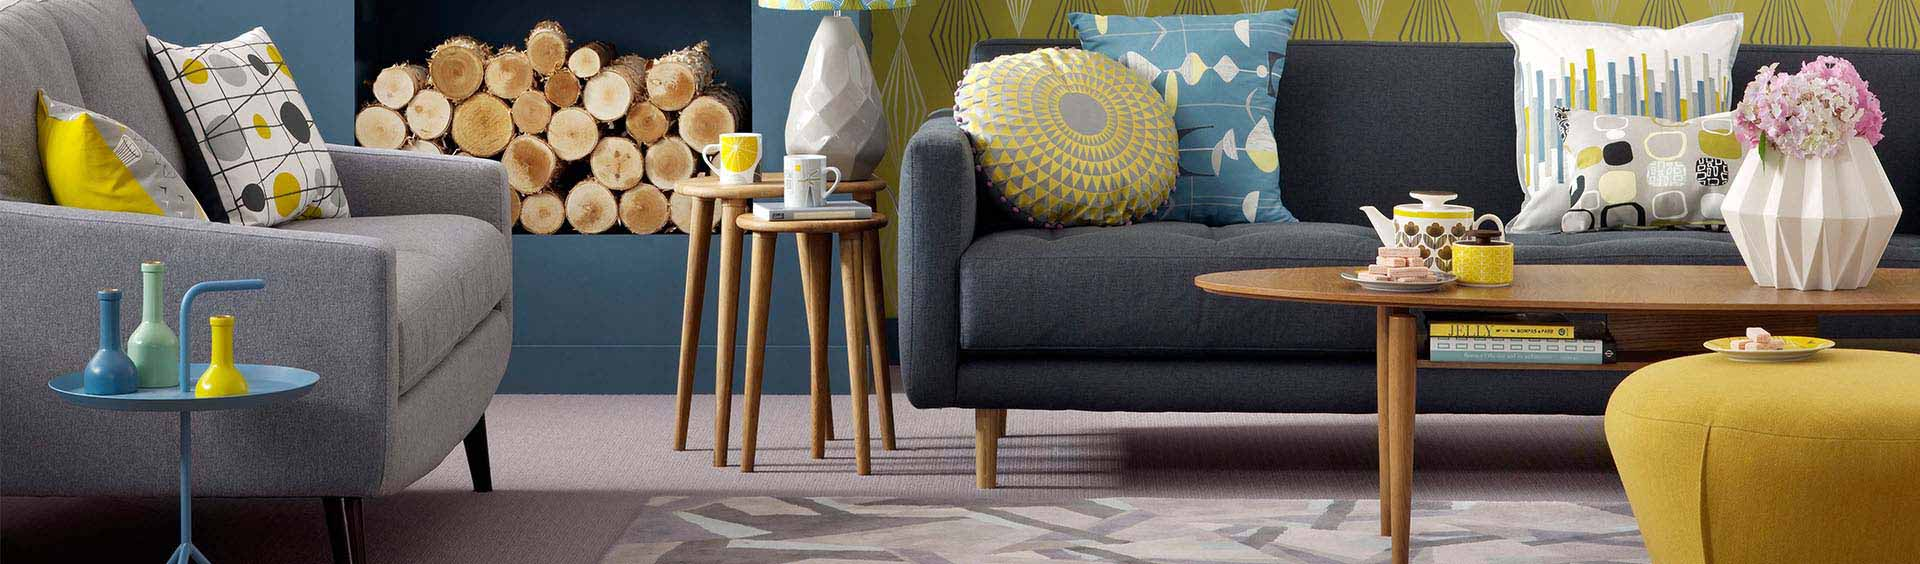 Furniture Legs Ireland upholstery supplies for furniture | heritage upholstery ireland